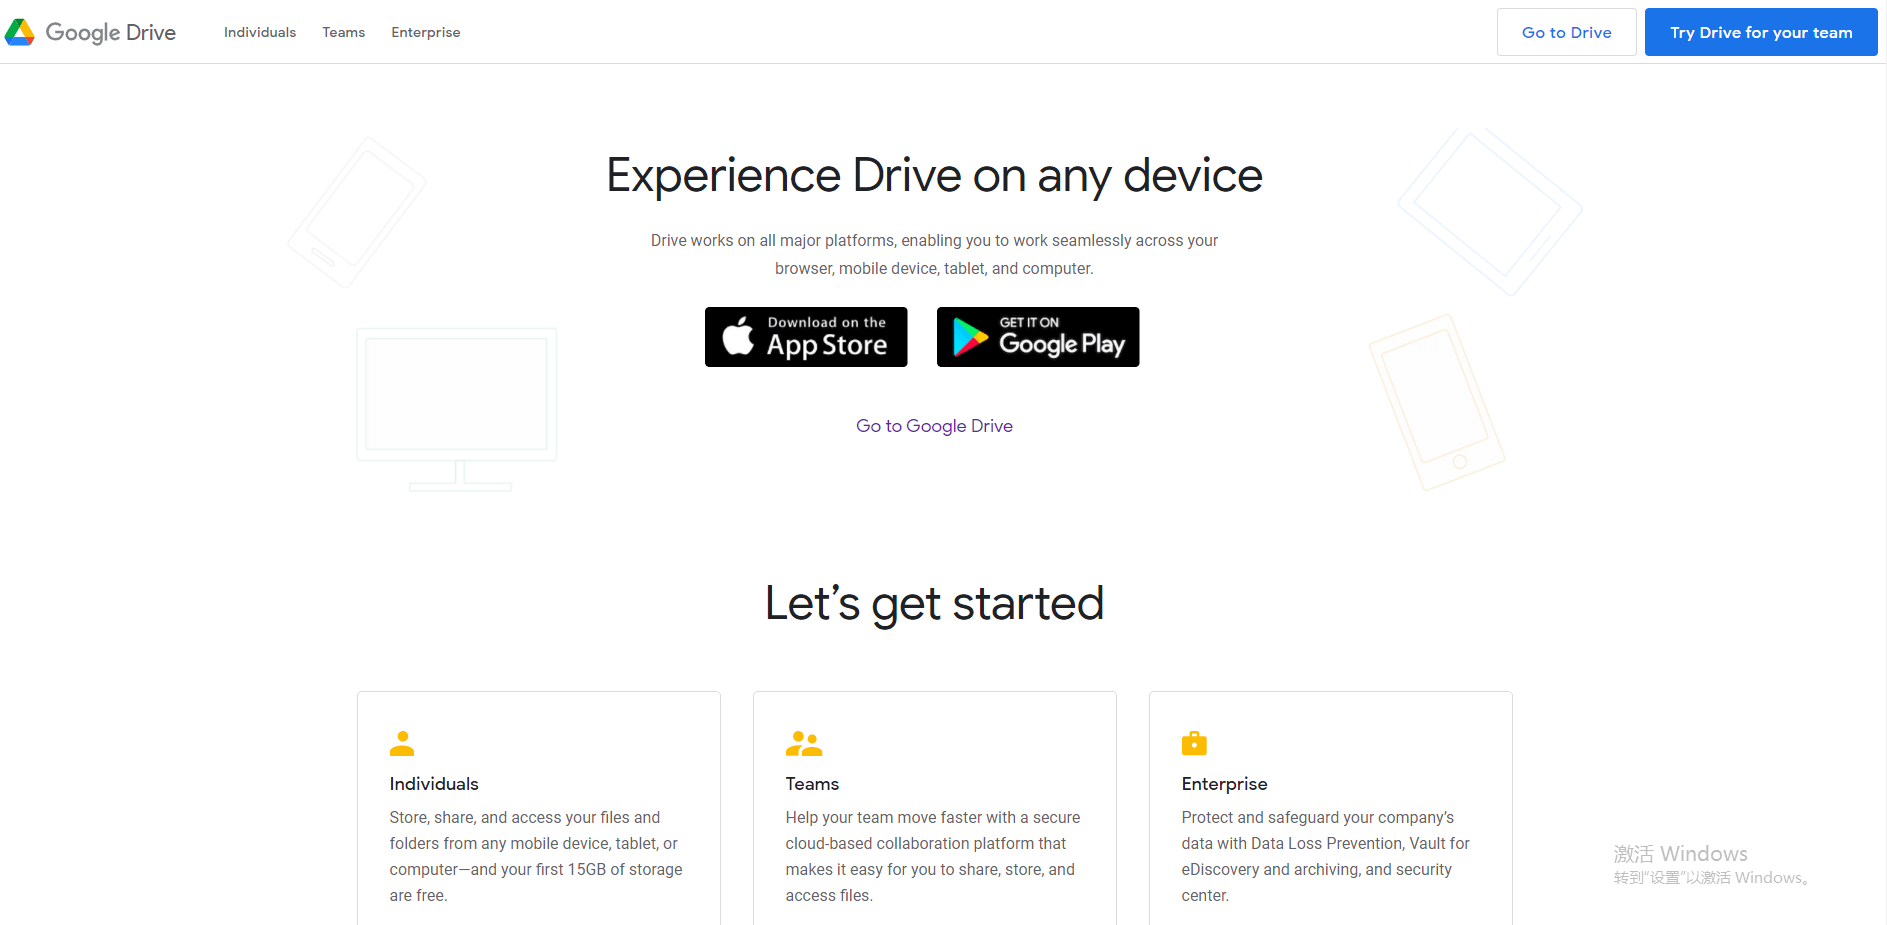 Google Drive Download Page